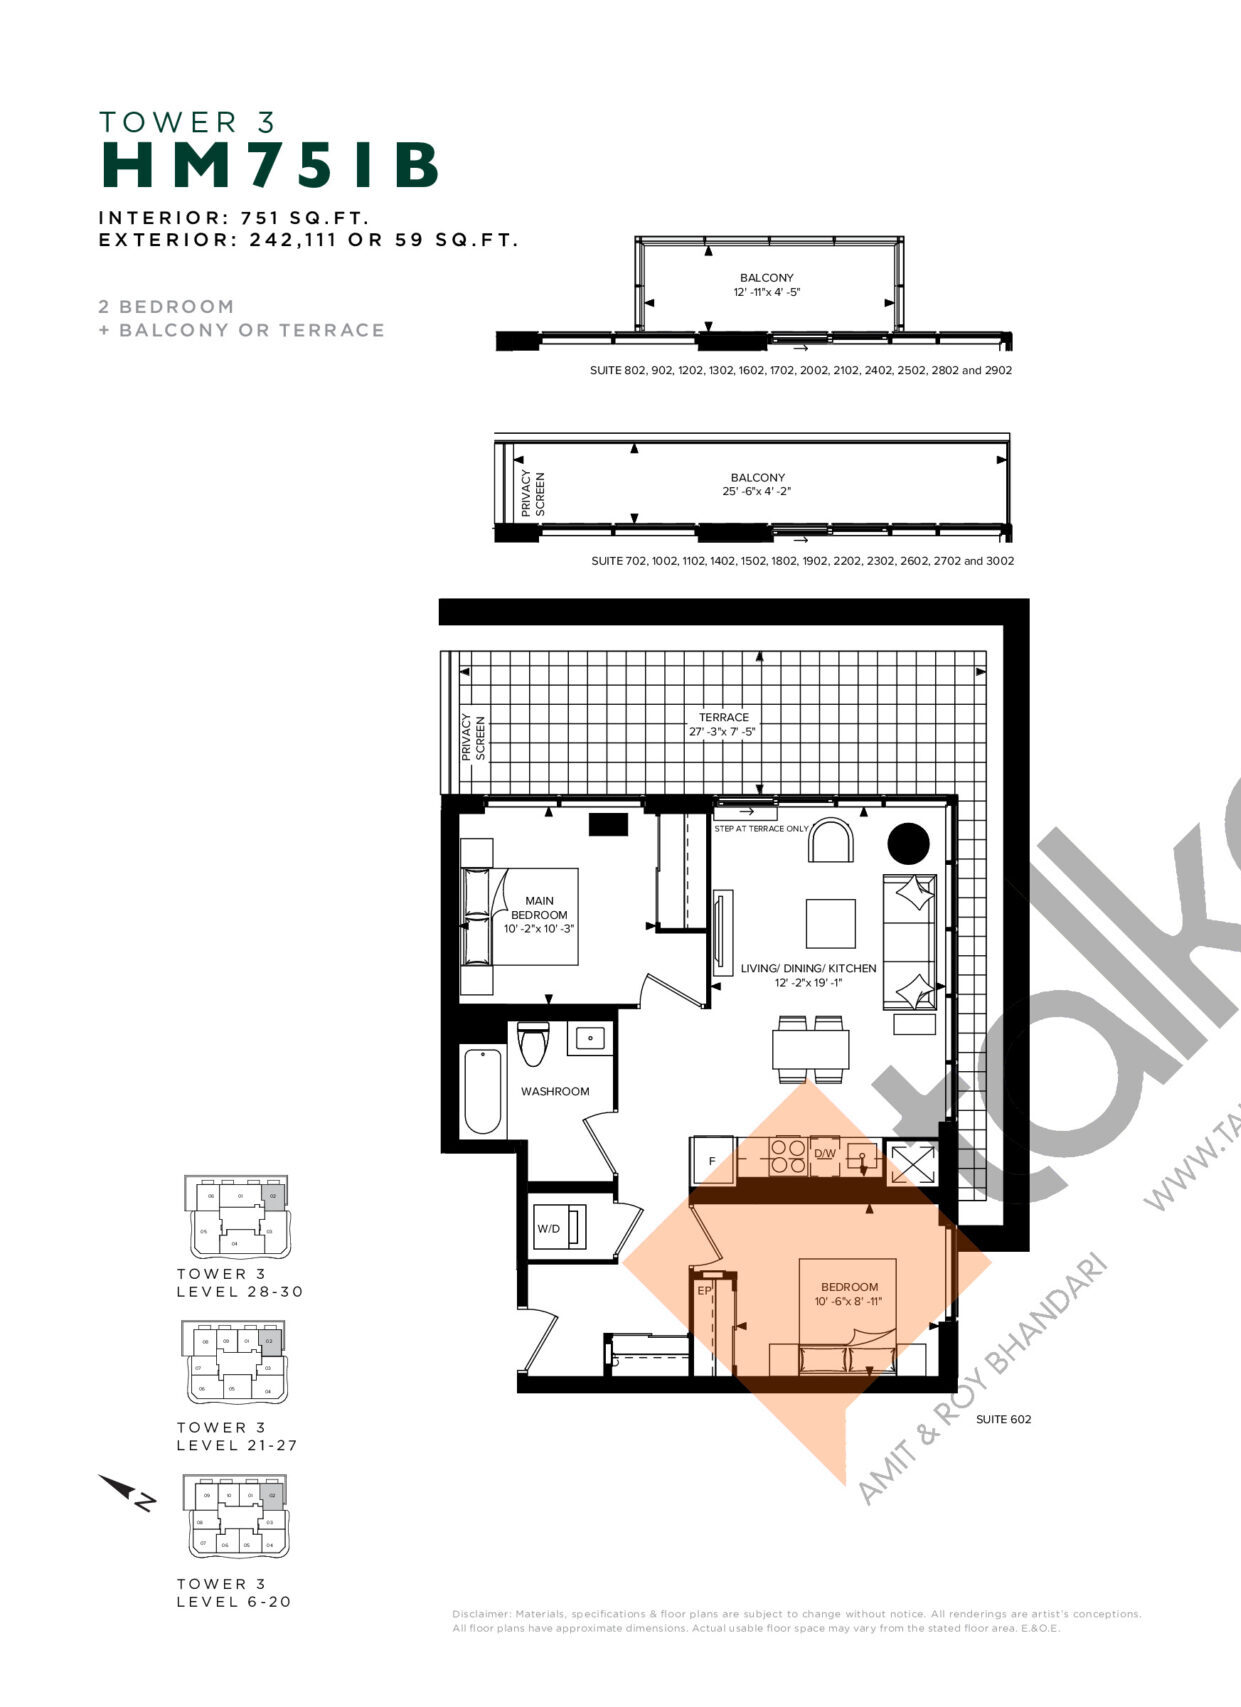 HM 751B (Tower 3) Floor Plan at Hillmont at SXSW Condos - 751 sq.ft